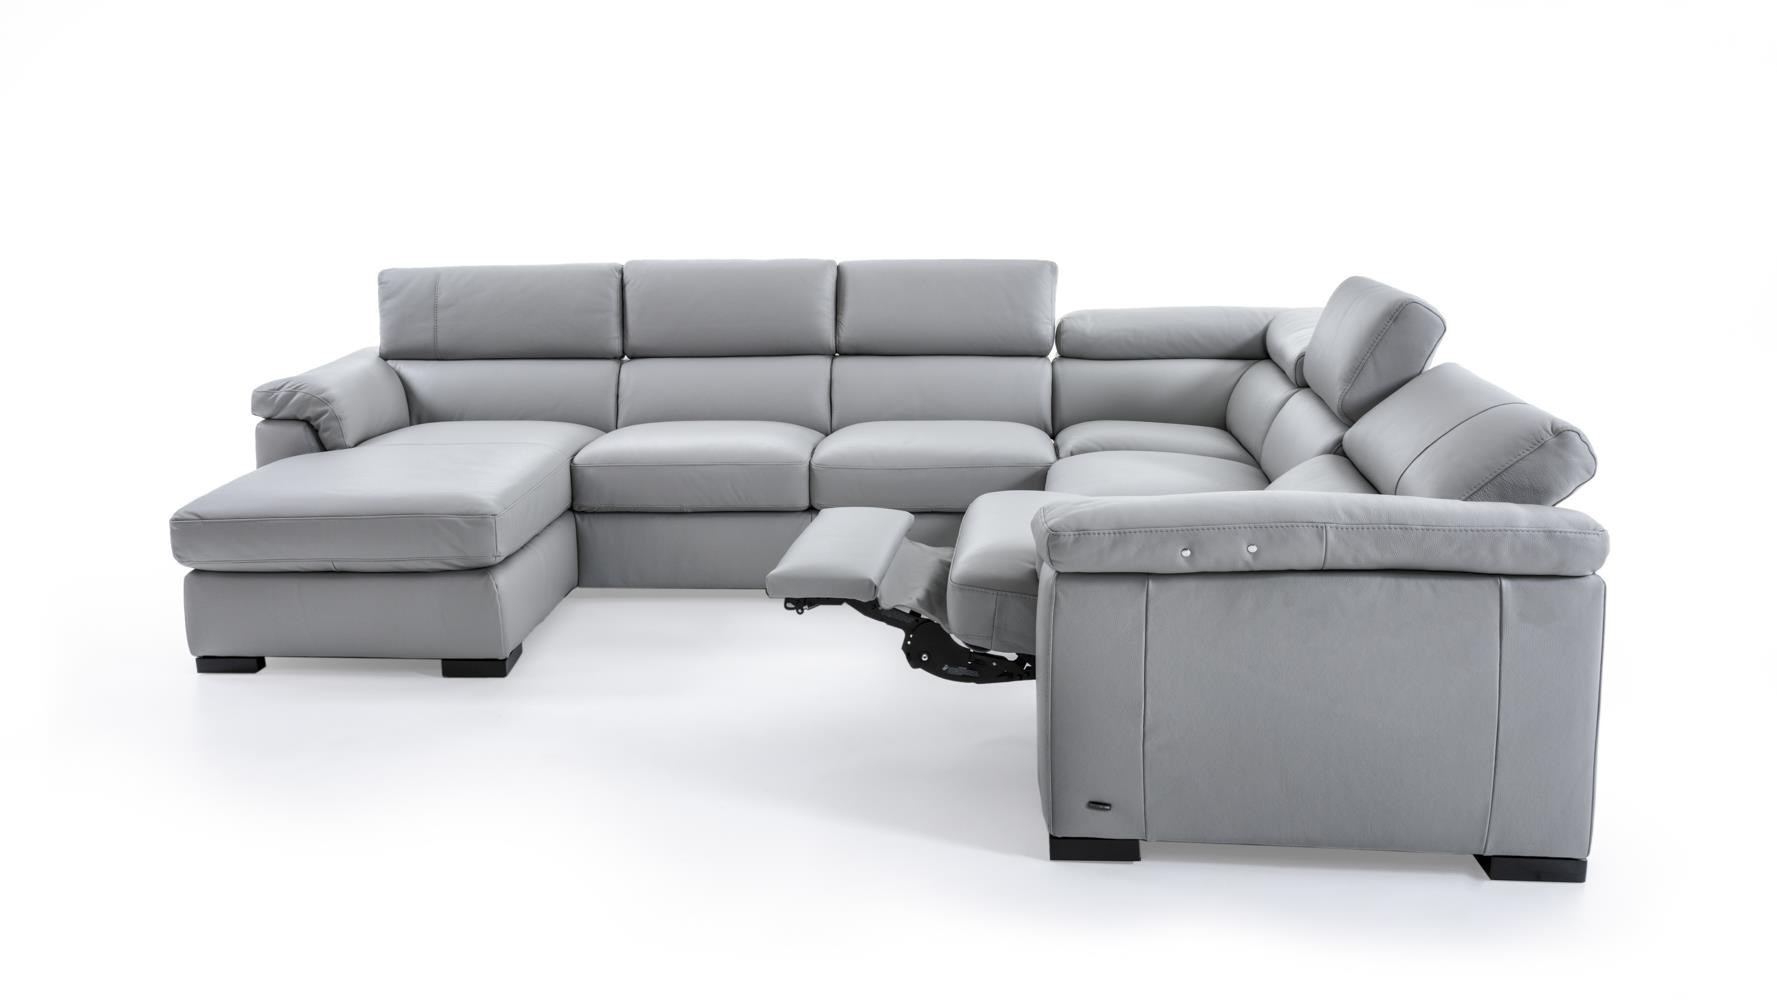 Natuzzi Editions B634 Contemporary Leather Sectional Sofa With LAF Chaise  And RAF Power Recliner